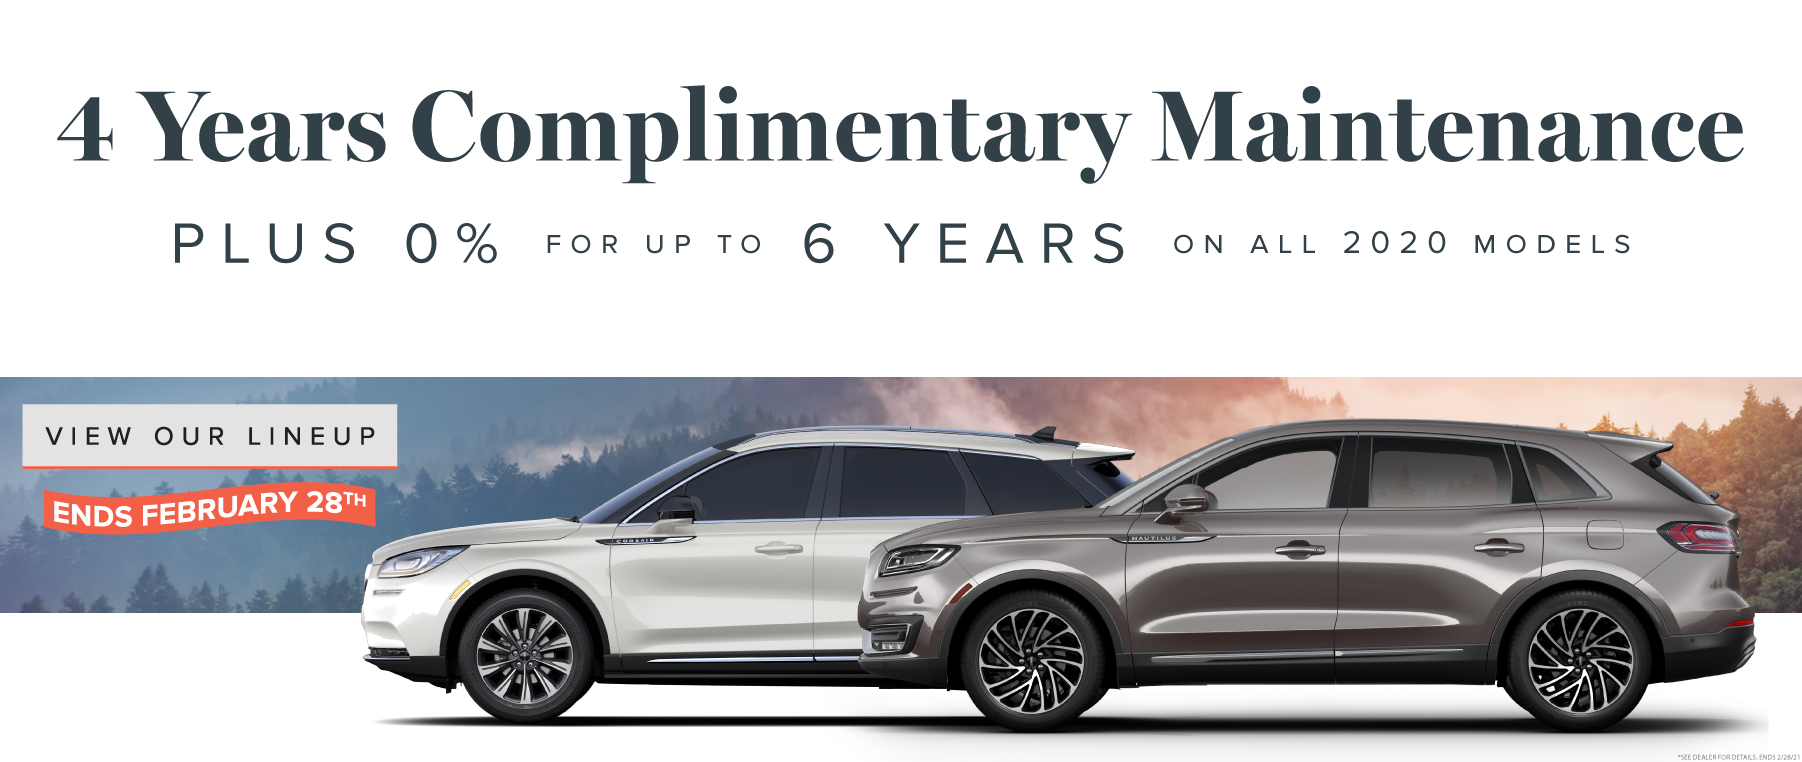 4 Years Complimentary Maintenance